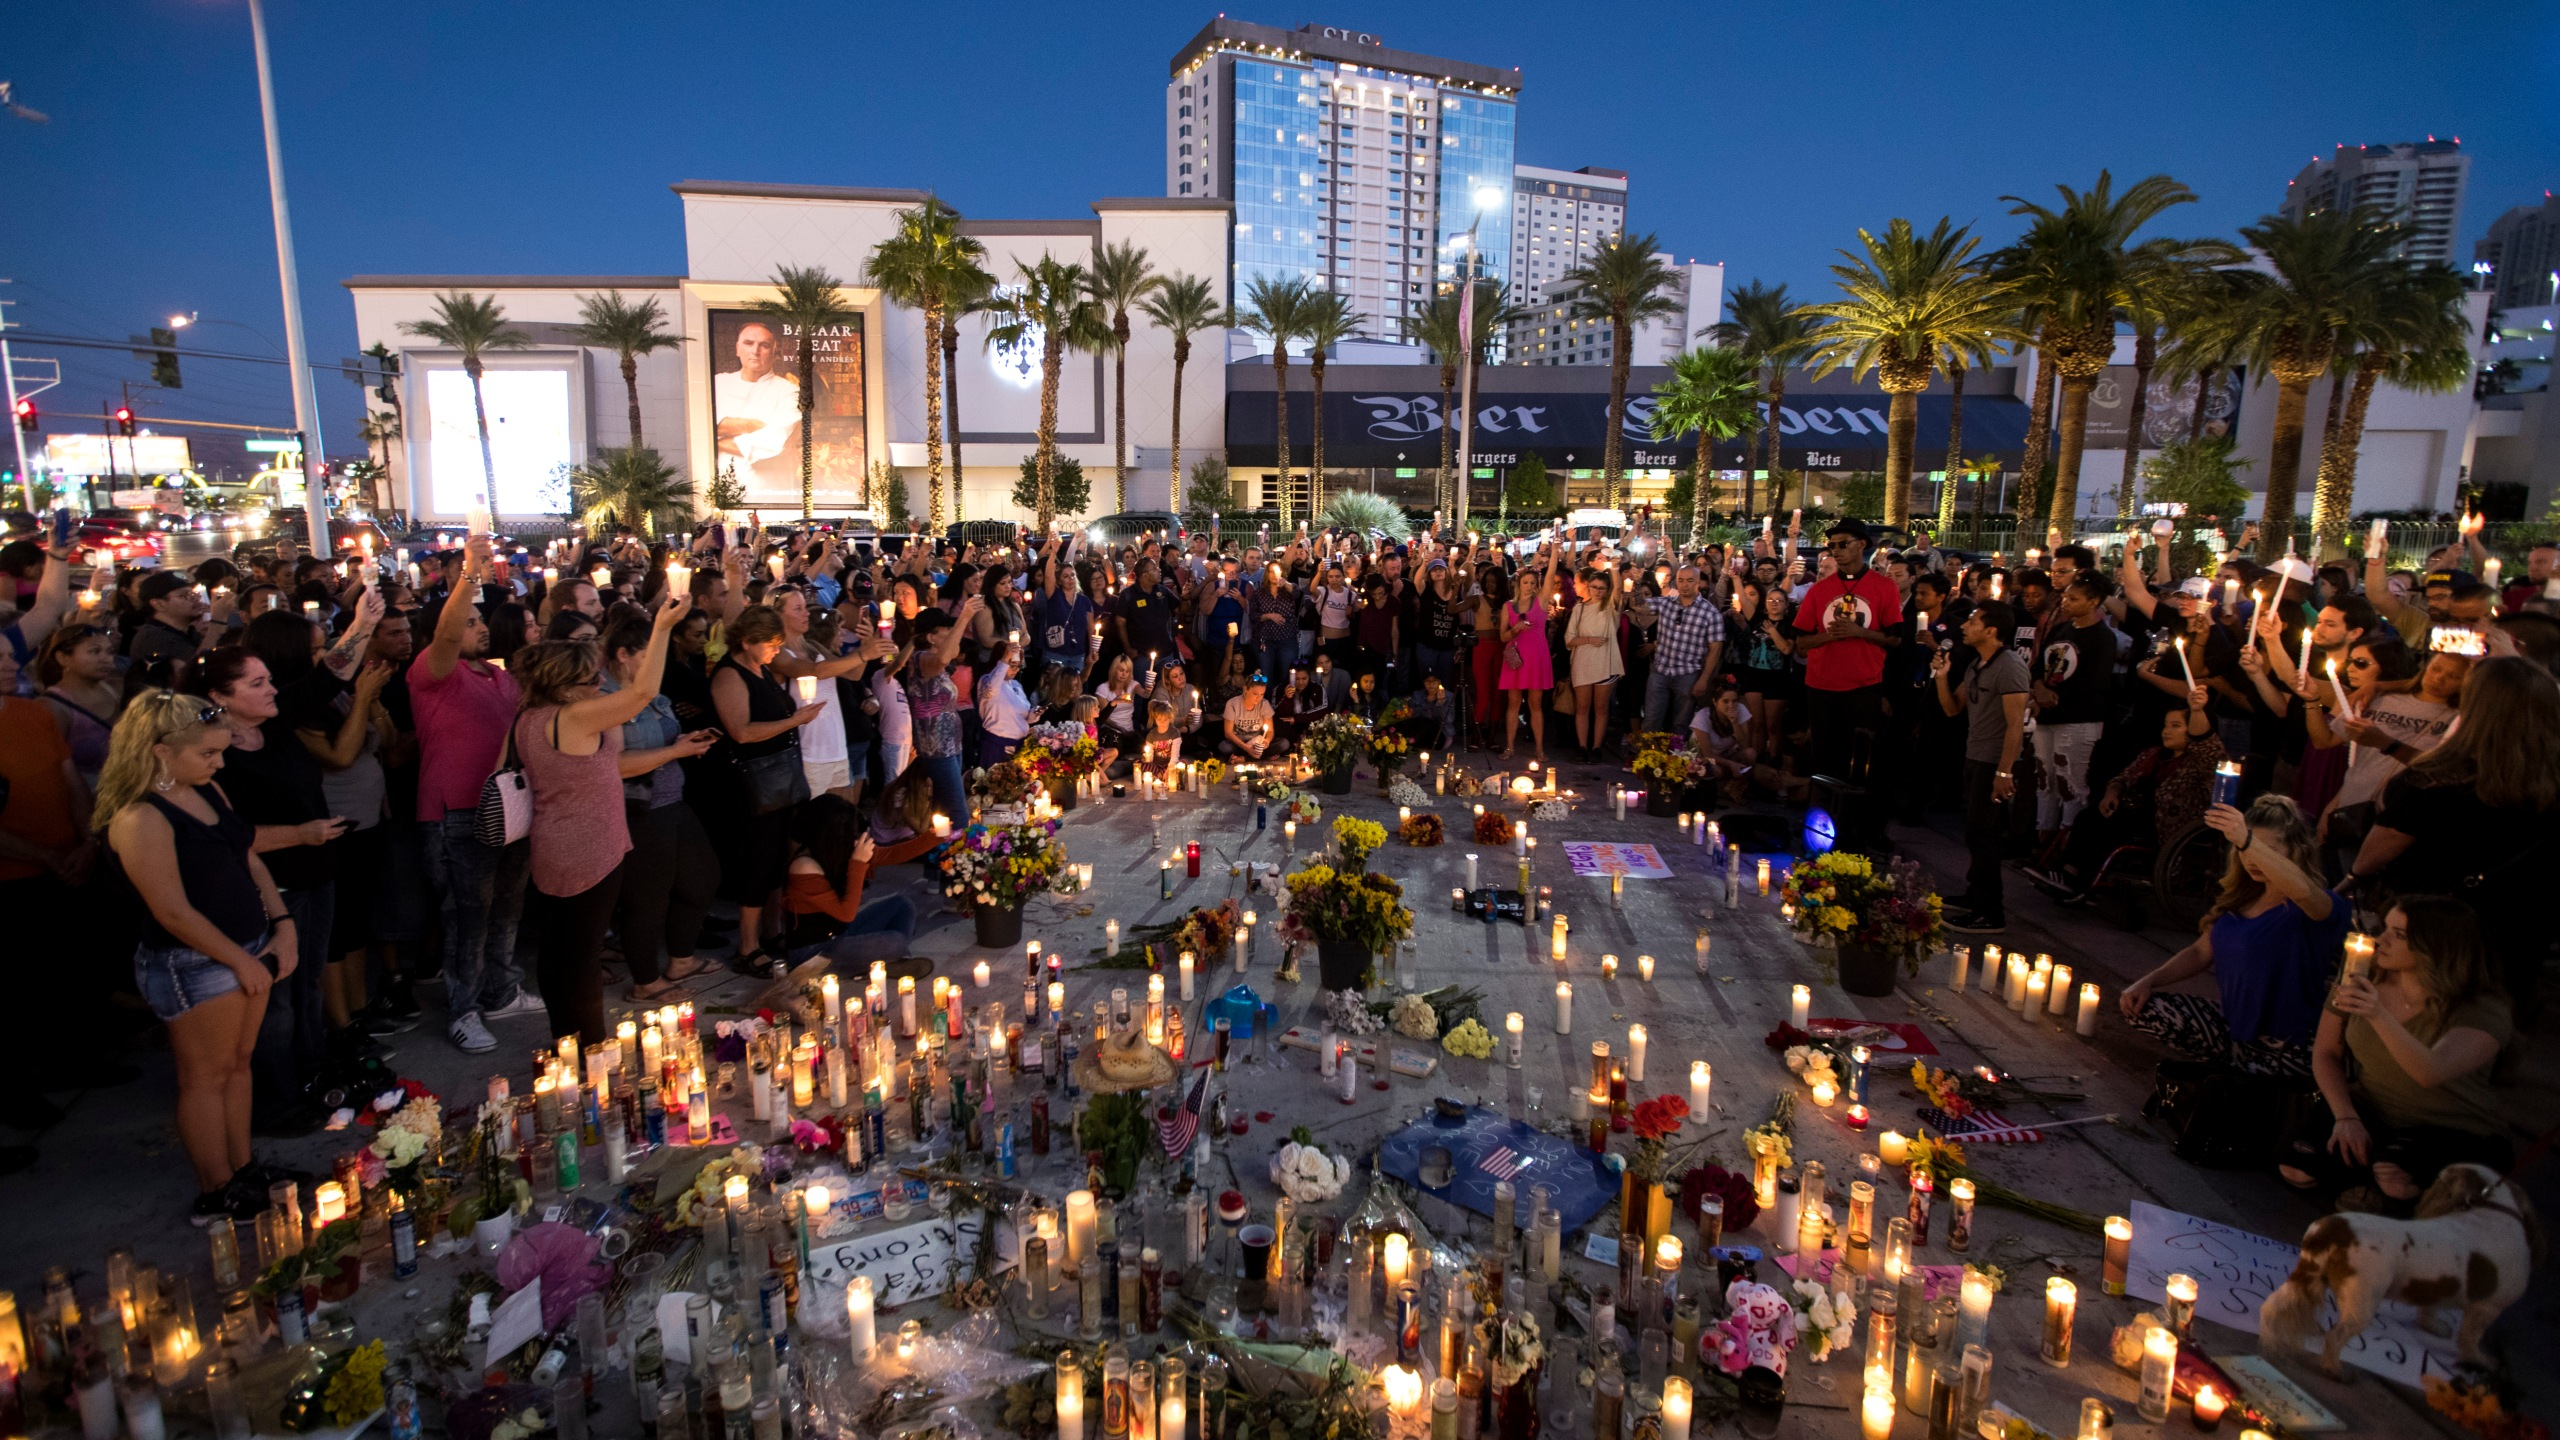 Mourners hold their candles in the air for a moment of silence during a vigil on the Las Vegas Strip to mark one week since the mass shooting at the Route 91 Harvest country music festival, Oct. 8, 2017. (Credit: Drew Angerer / Getty Images)